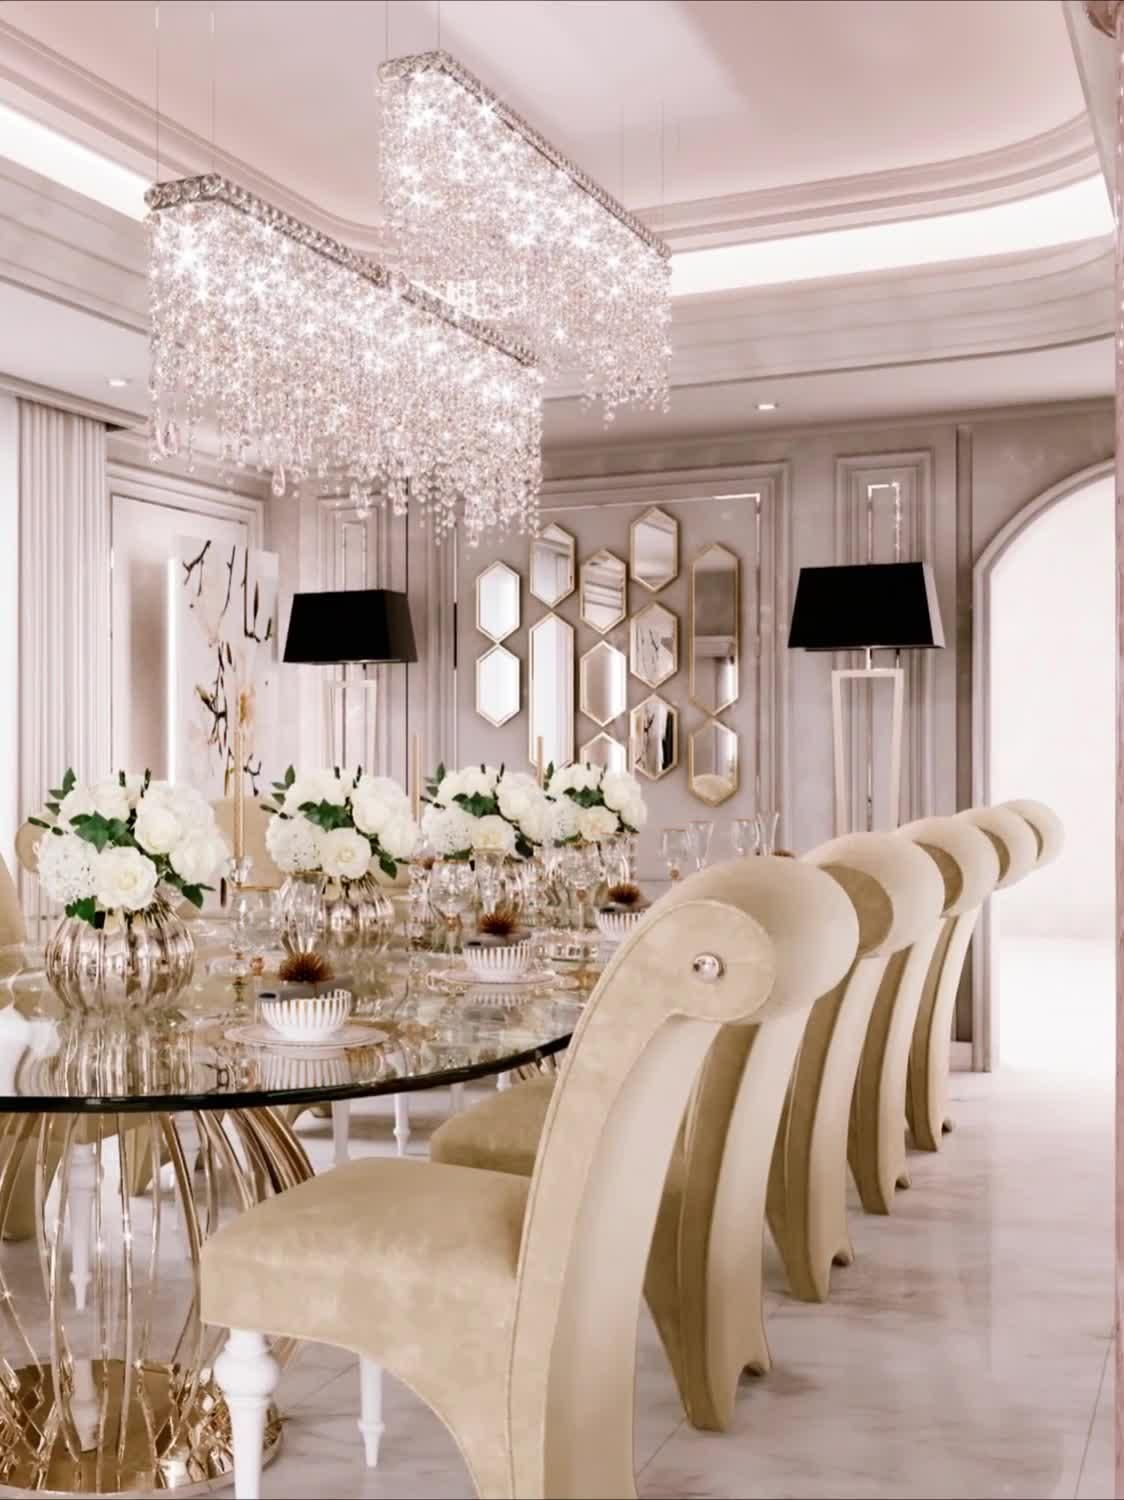 Photo of Contemporary main dining room interiors videos by Spazio designers